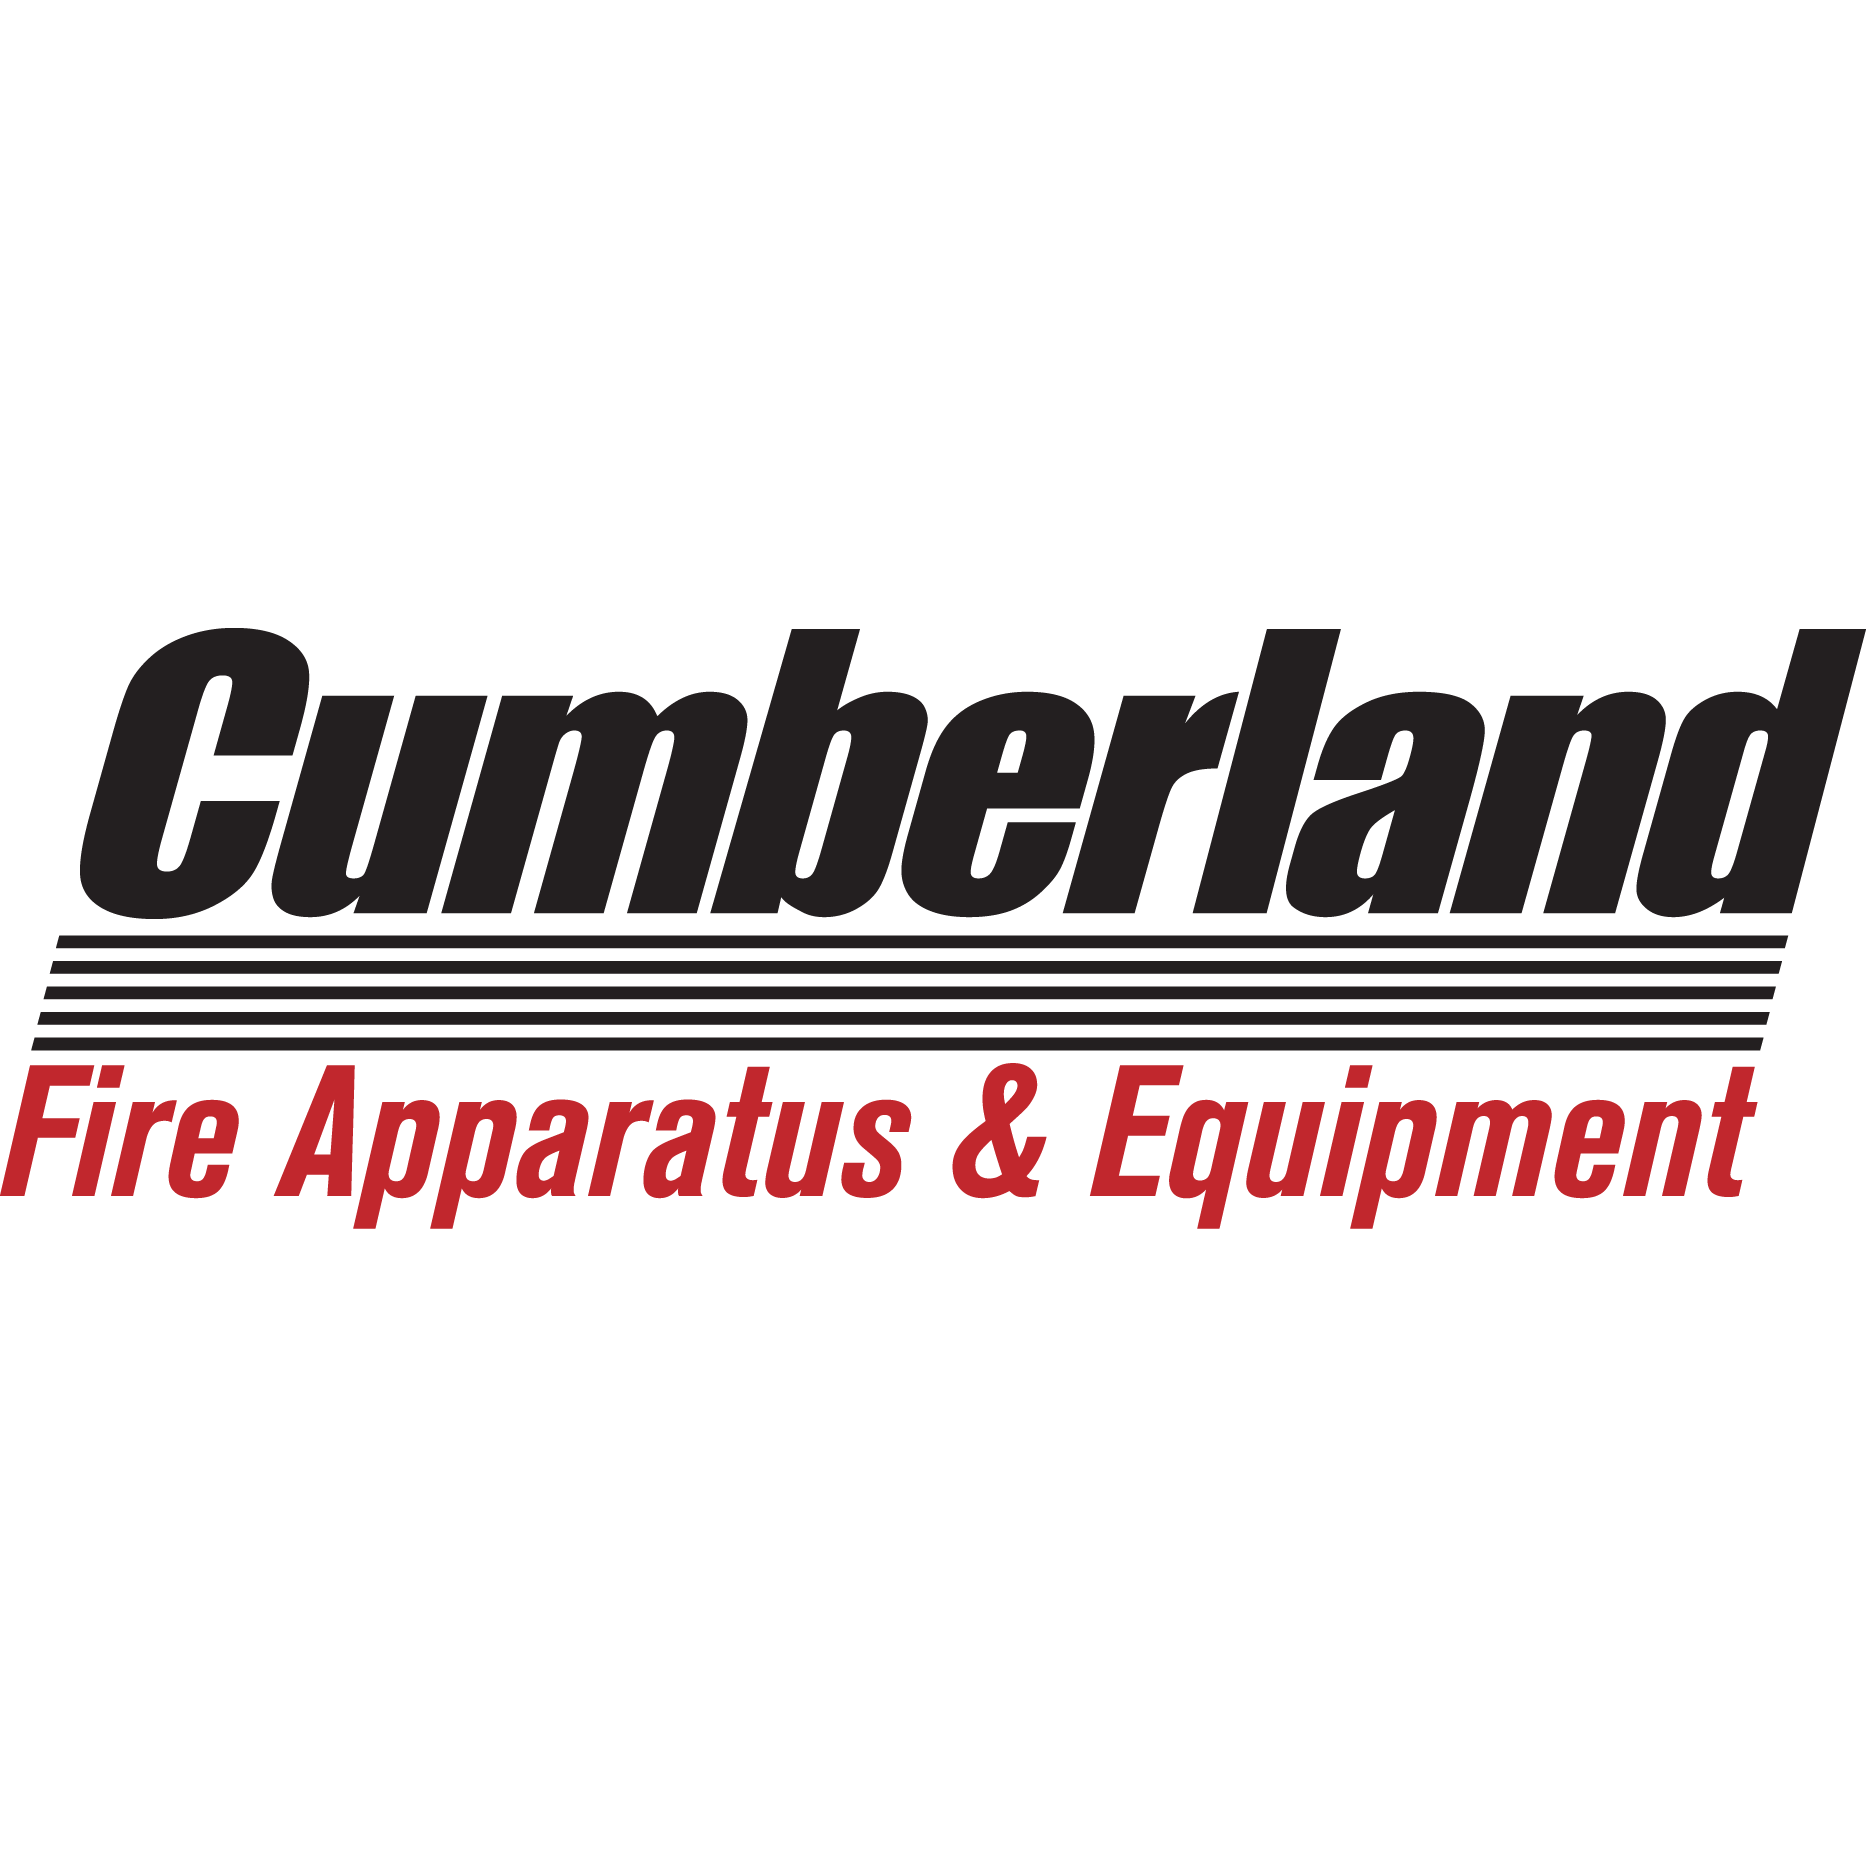 Cumberland Fire Apparatus & Equipment